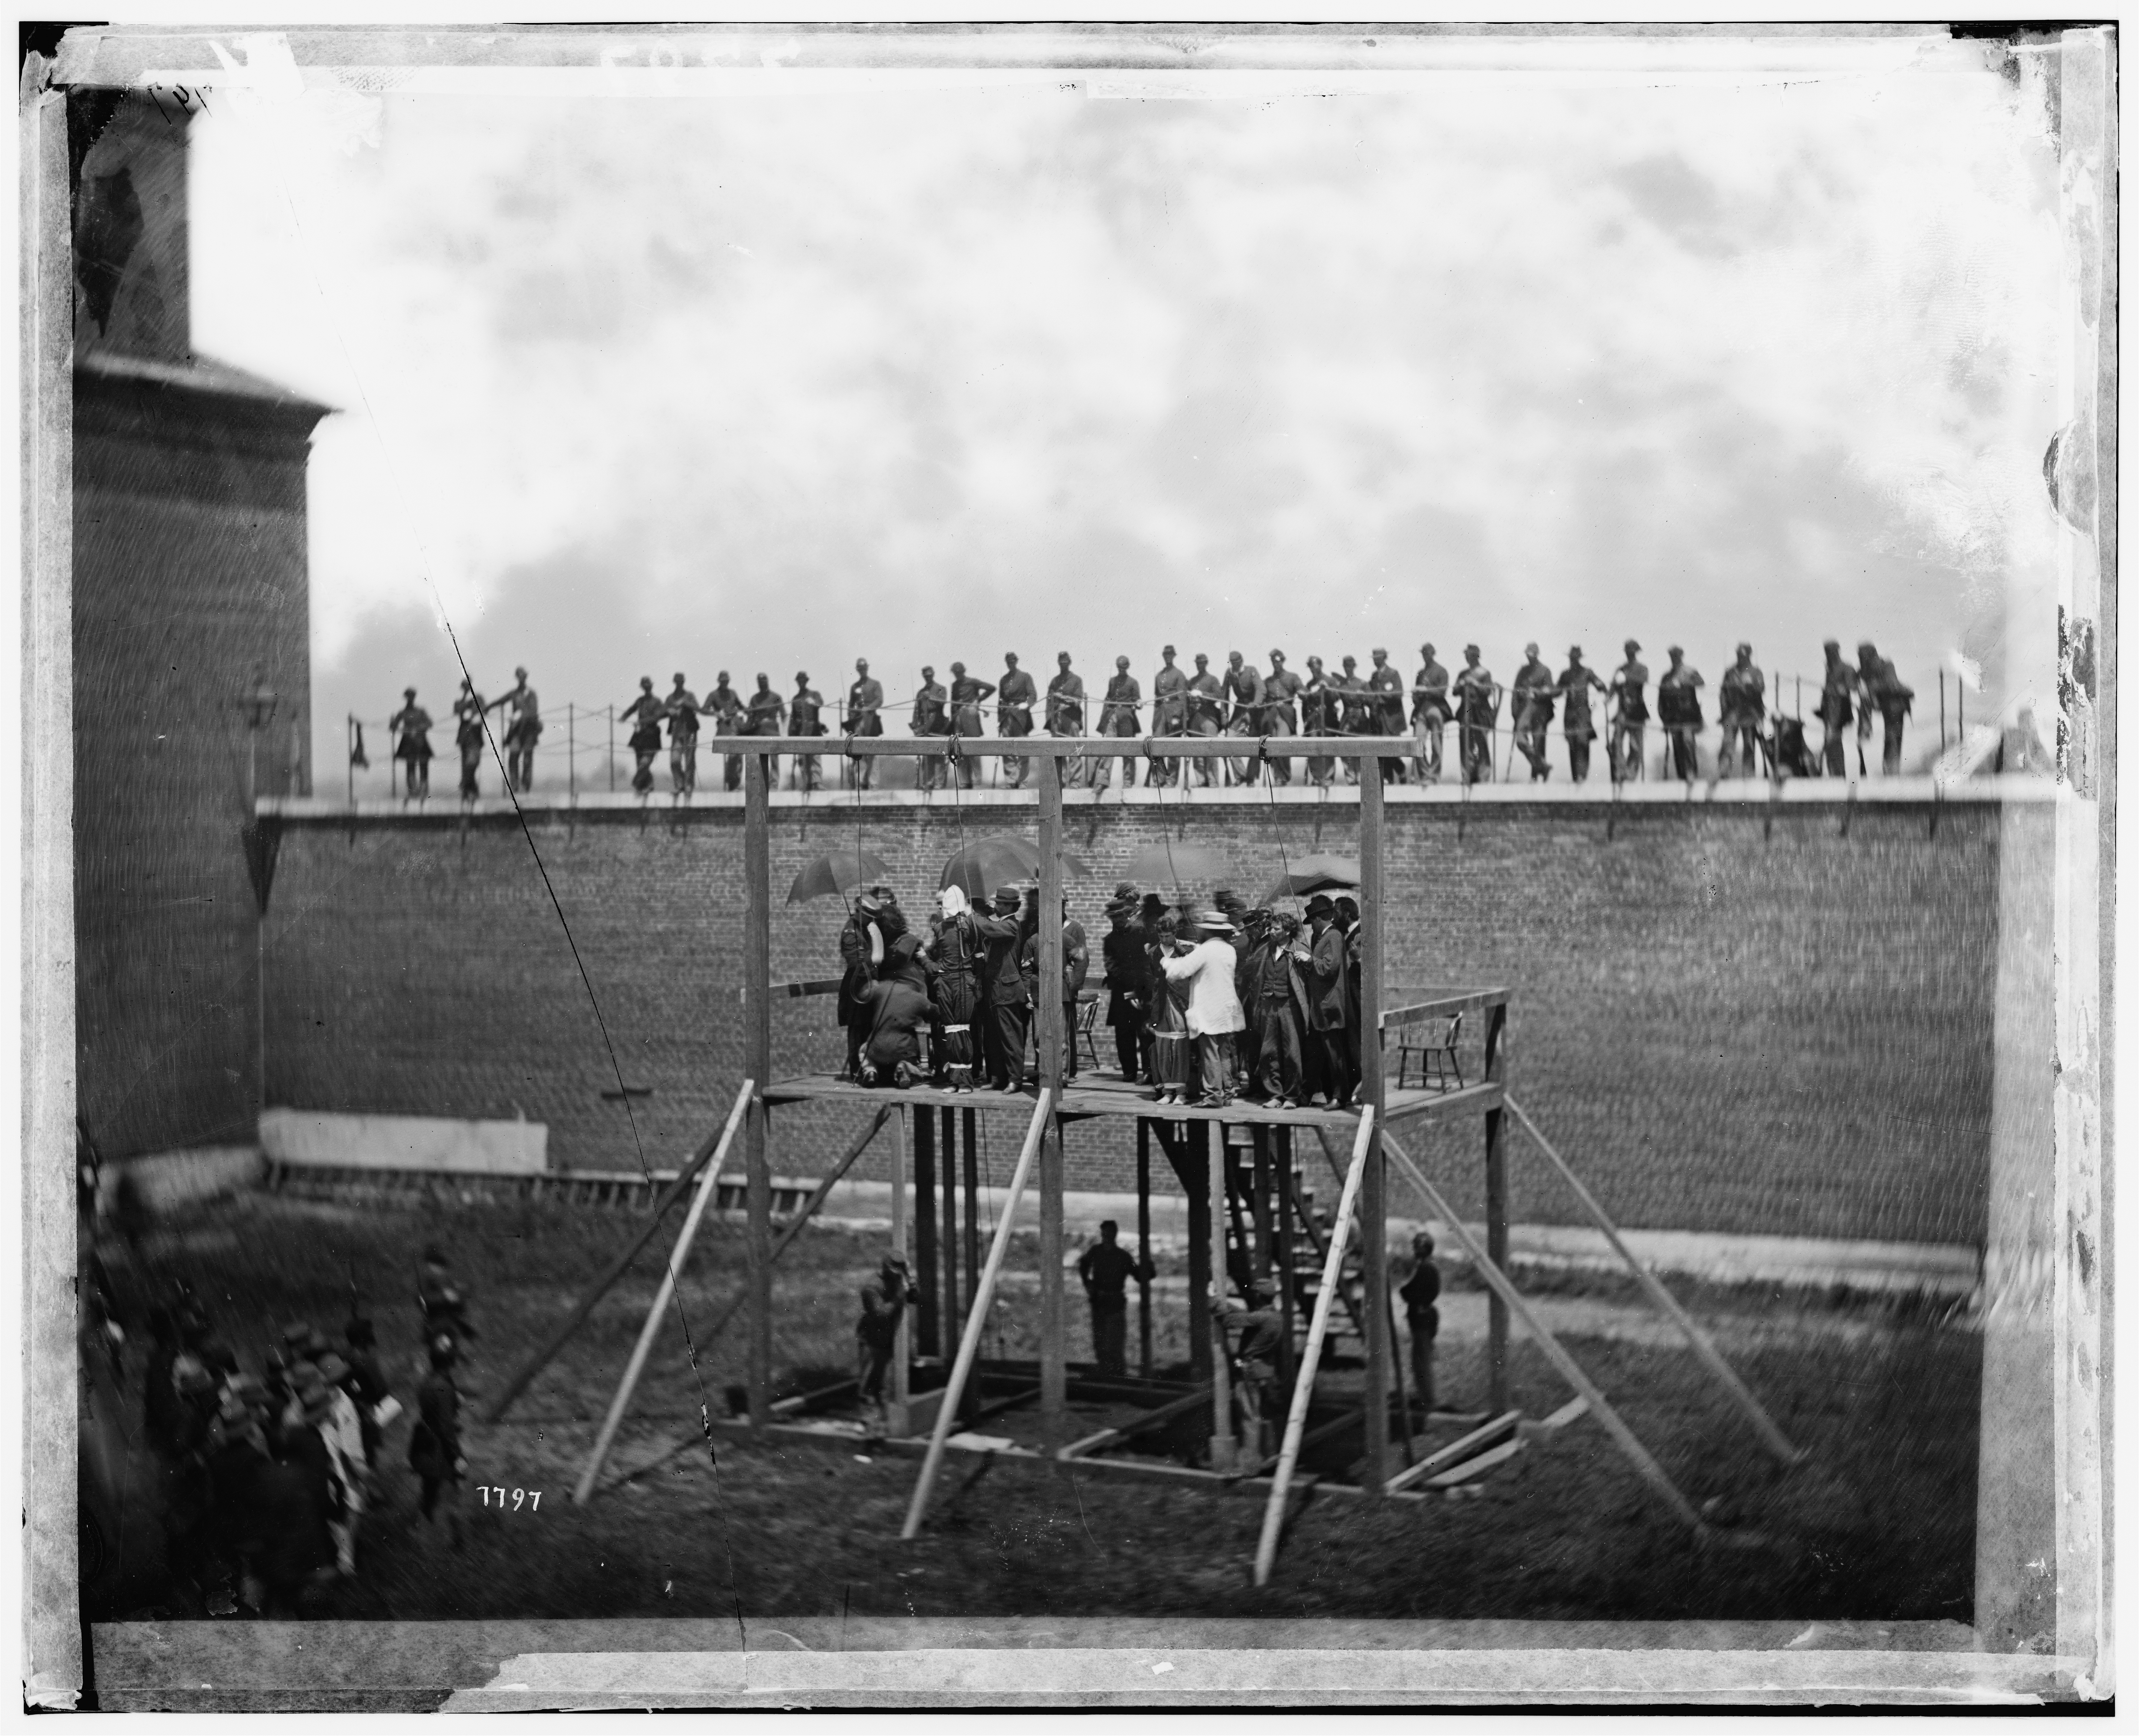 Library of Congress photo of the Lincoln assassination conspirators on the platform just before being hanged in Washington, D.C., in spring 1865.